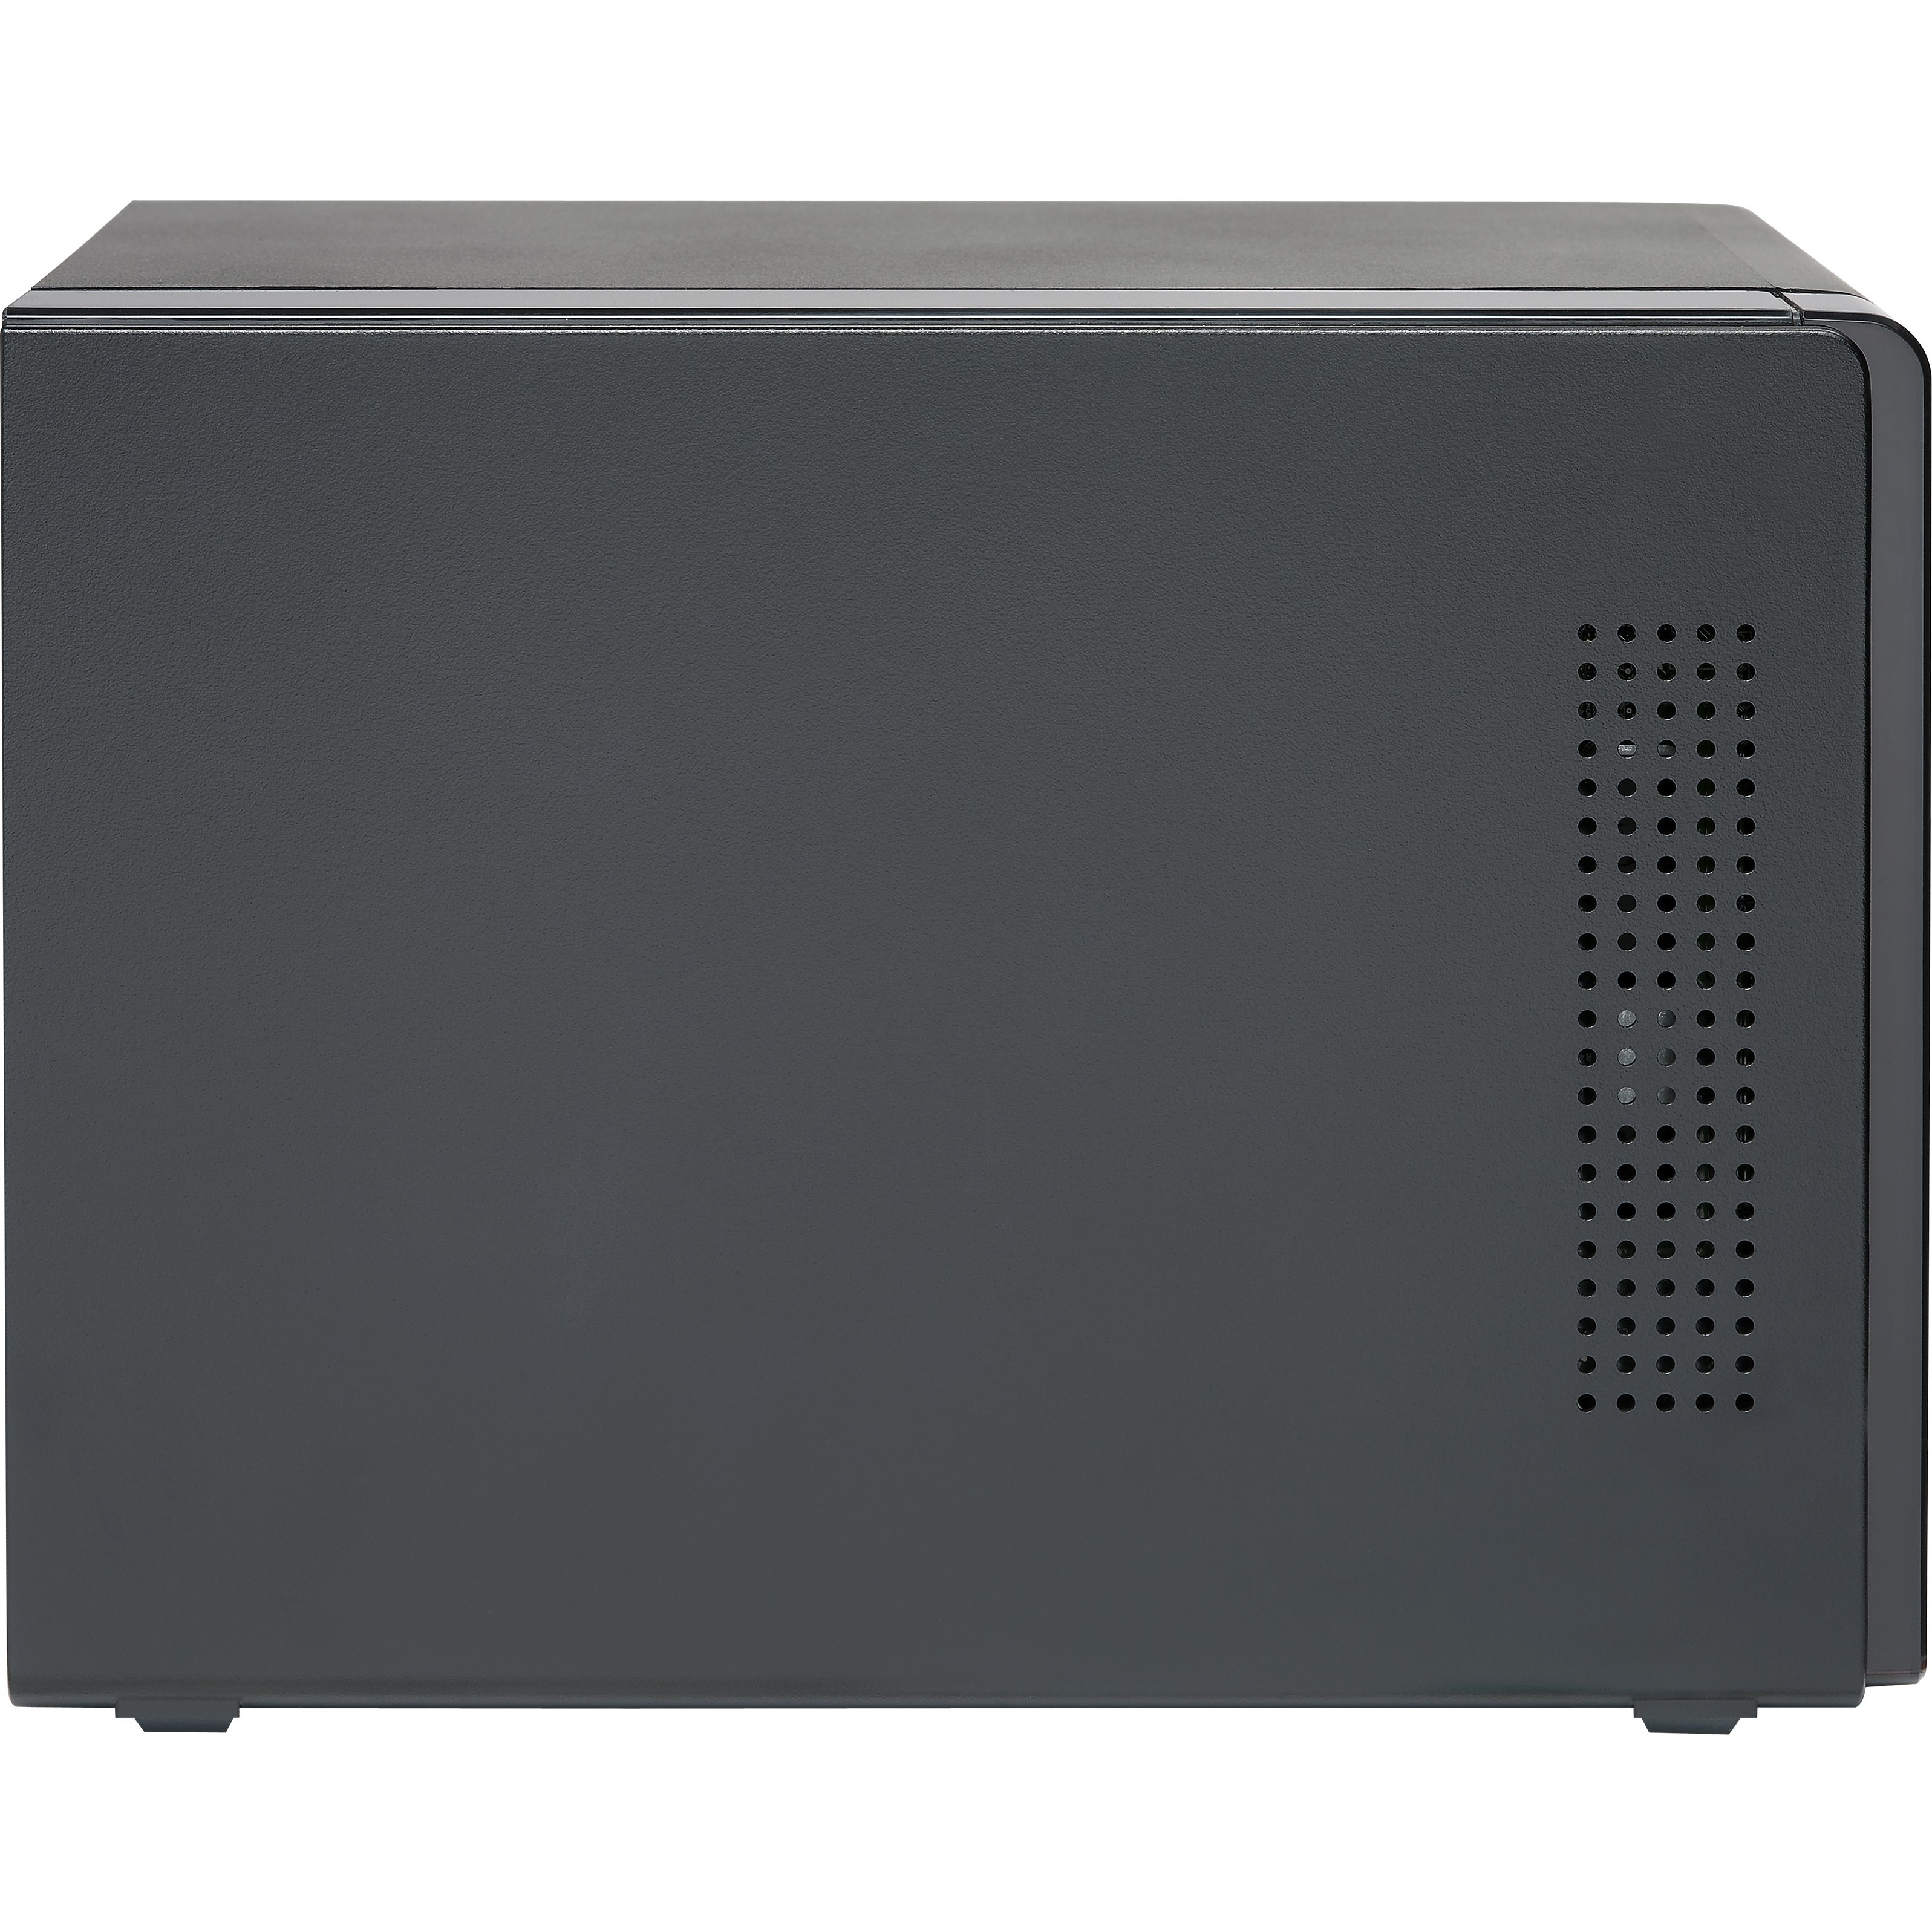 QNAP Turbo NAS TS-451plus 4 x Total Bays SAN/NAS Storage System - Tower - Intel Celeron Quad-core 4 Core 2 GHz - 4 x HDD Supported - 4 x HDD Installed - 16 TB Install